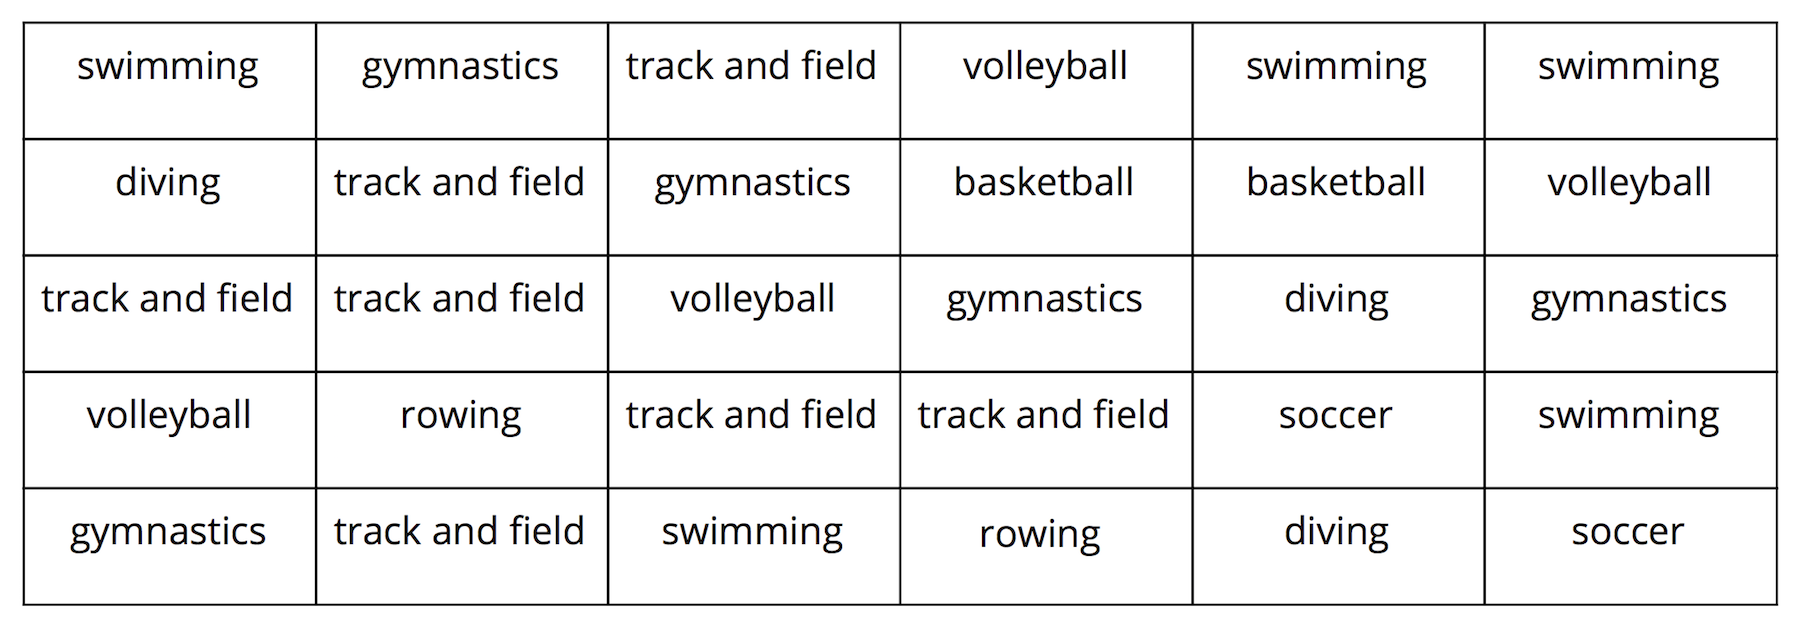 A 6-column table with 5 rows of data. the data are as follows: Row 1: swimming, gymnastics, track and field, volleyball, swimming, swimming. Row 2: diving, track and field, gymnastics, basketball, basketball, volleyball. Row 3: track and field, track and field, volleyball, gymnastics, diving, gymnastics. Row 4: volleyball, rowing, track and field, track and field, soccer, swimming. Row 5: gymnastics, track and field, swimming, rowing, diving, soccer